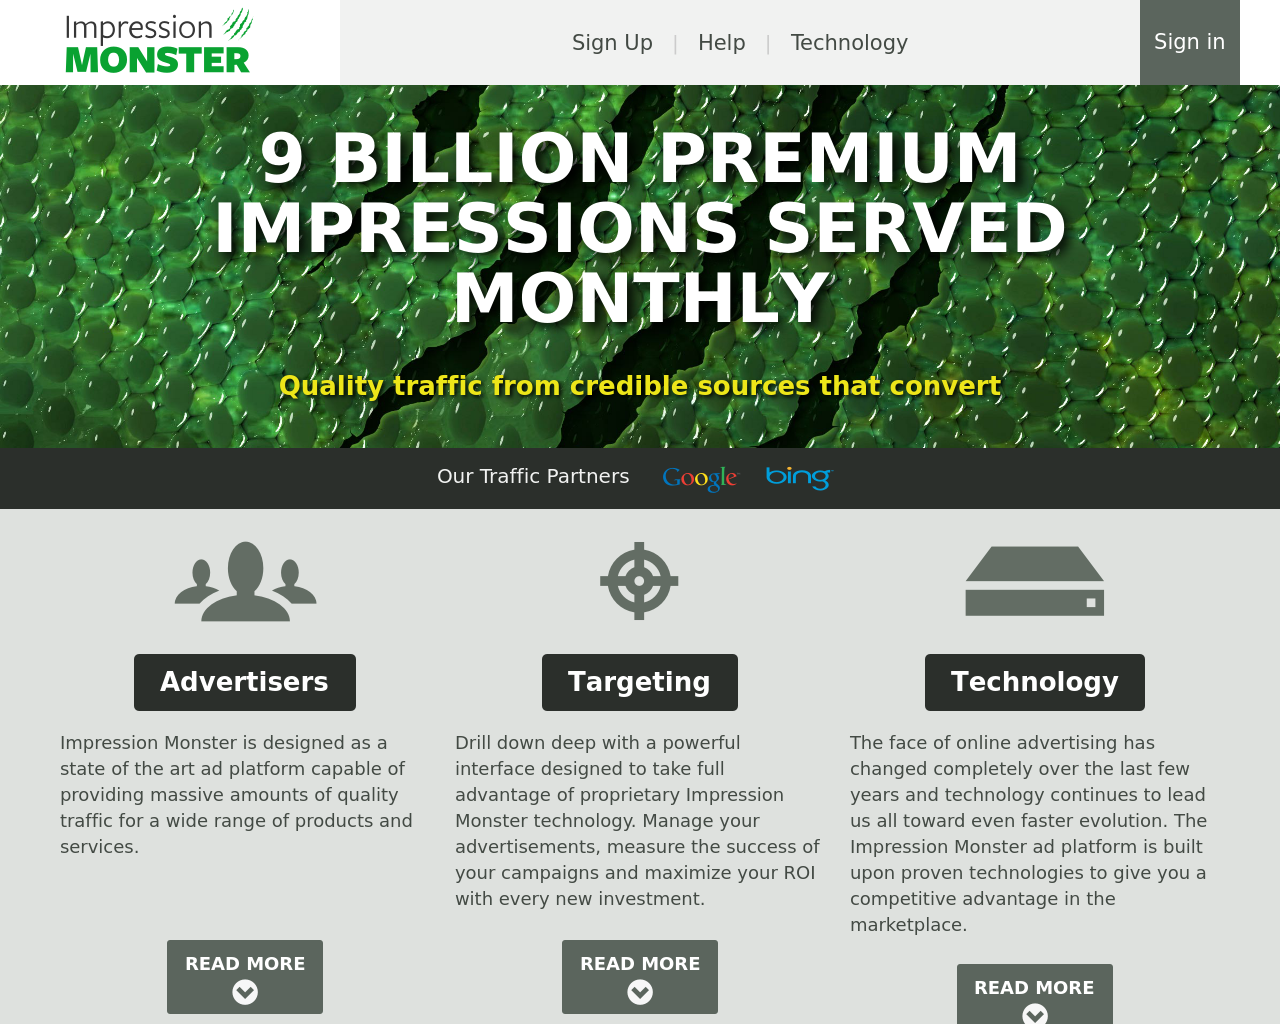 Impression-MONSTER-Advertising-Reviews-Pricing